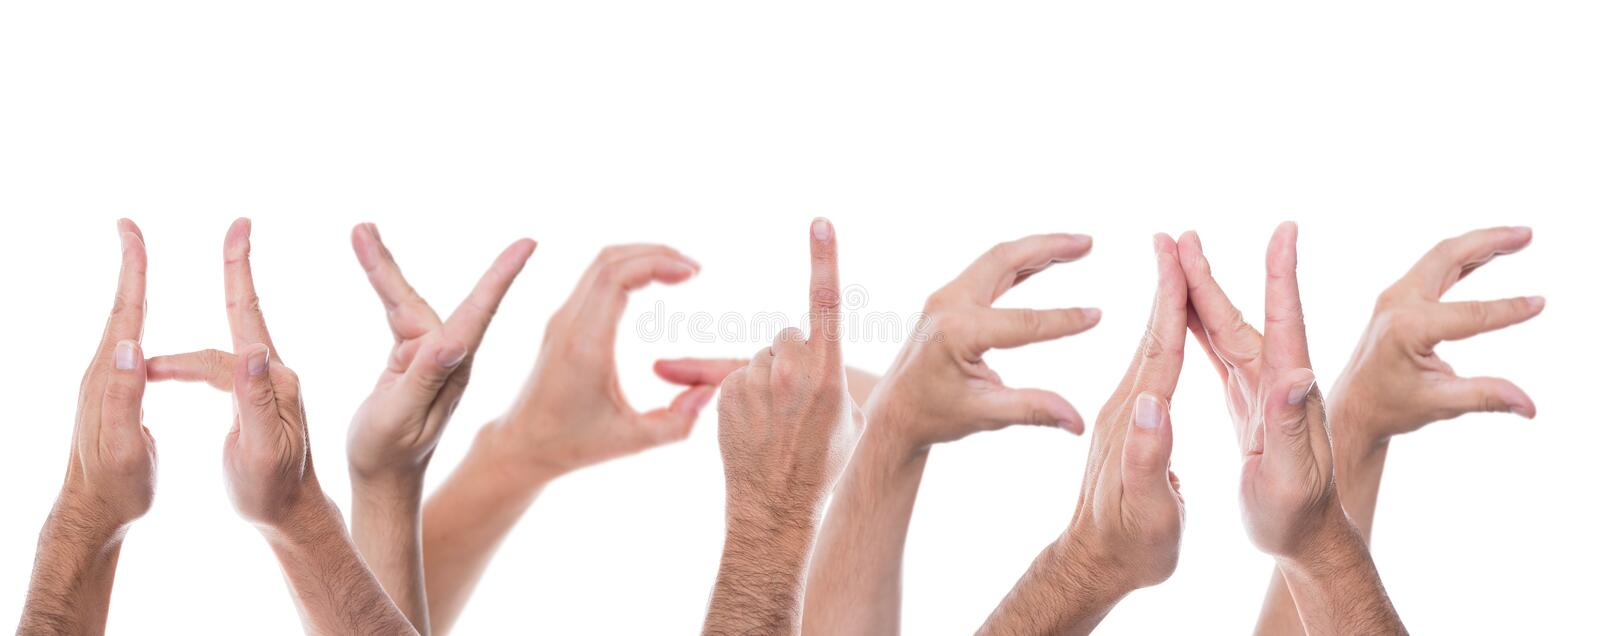 Hands form the word hygiene royalty free stock photo